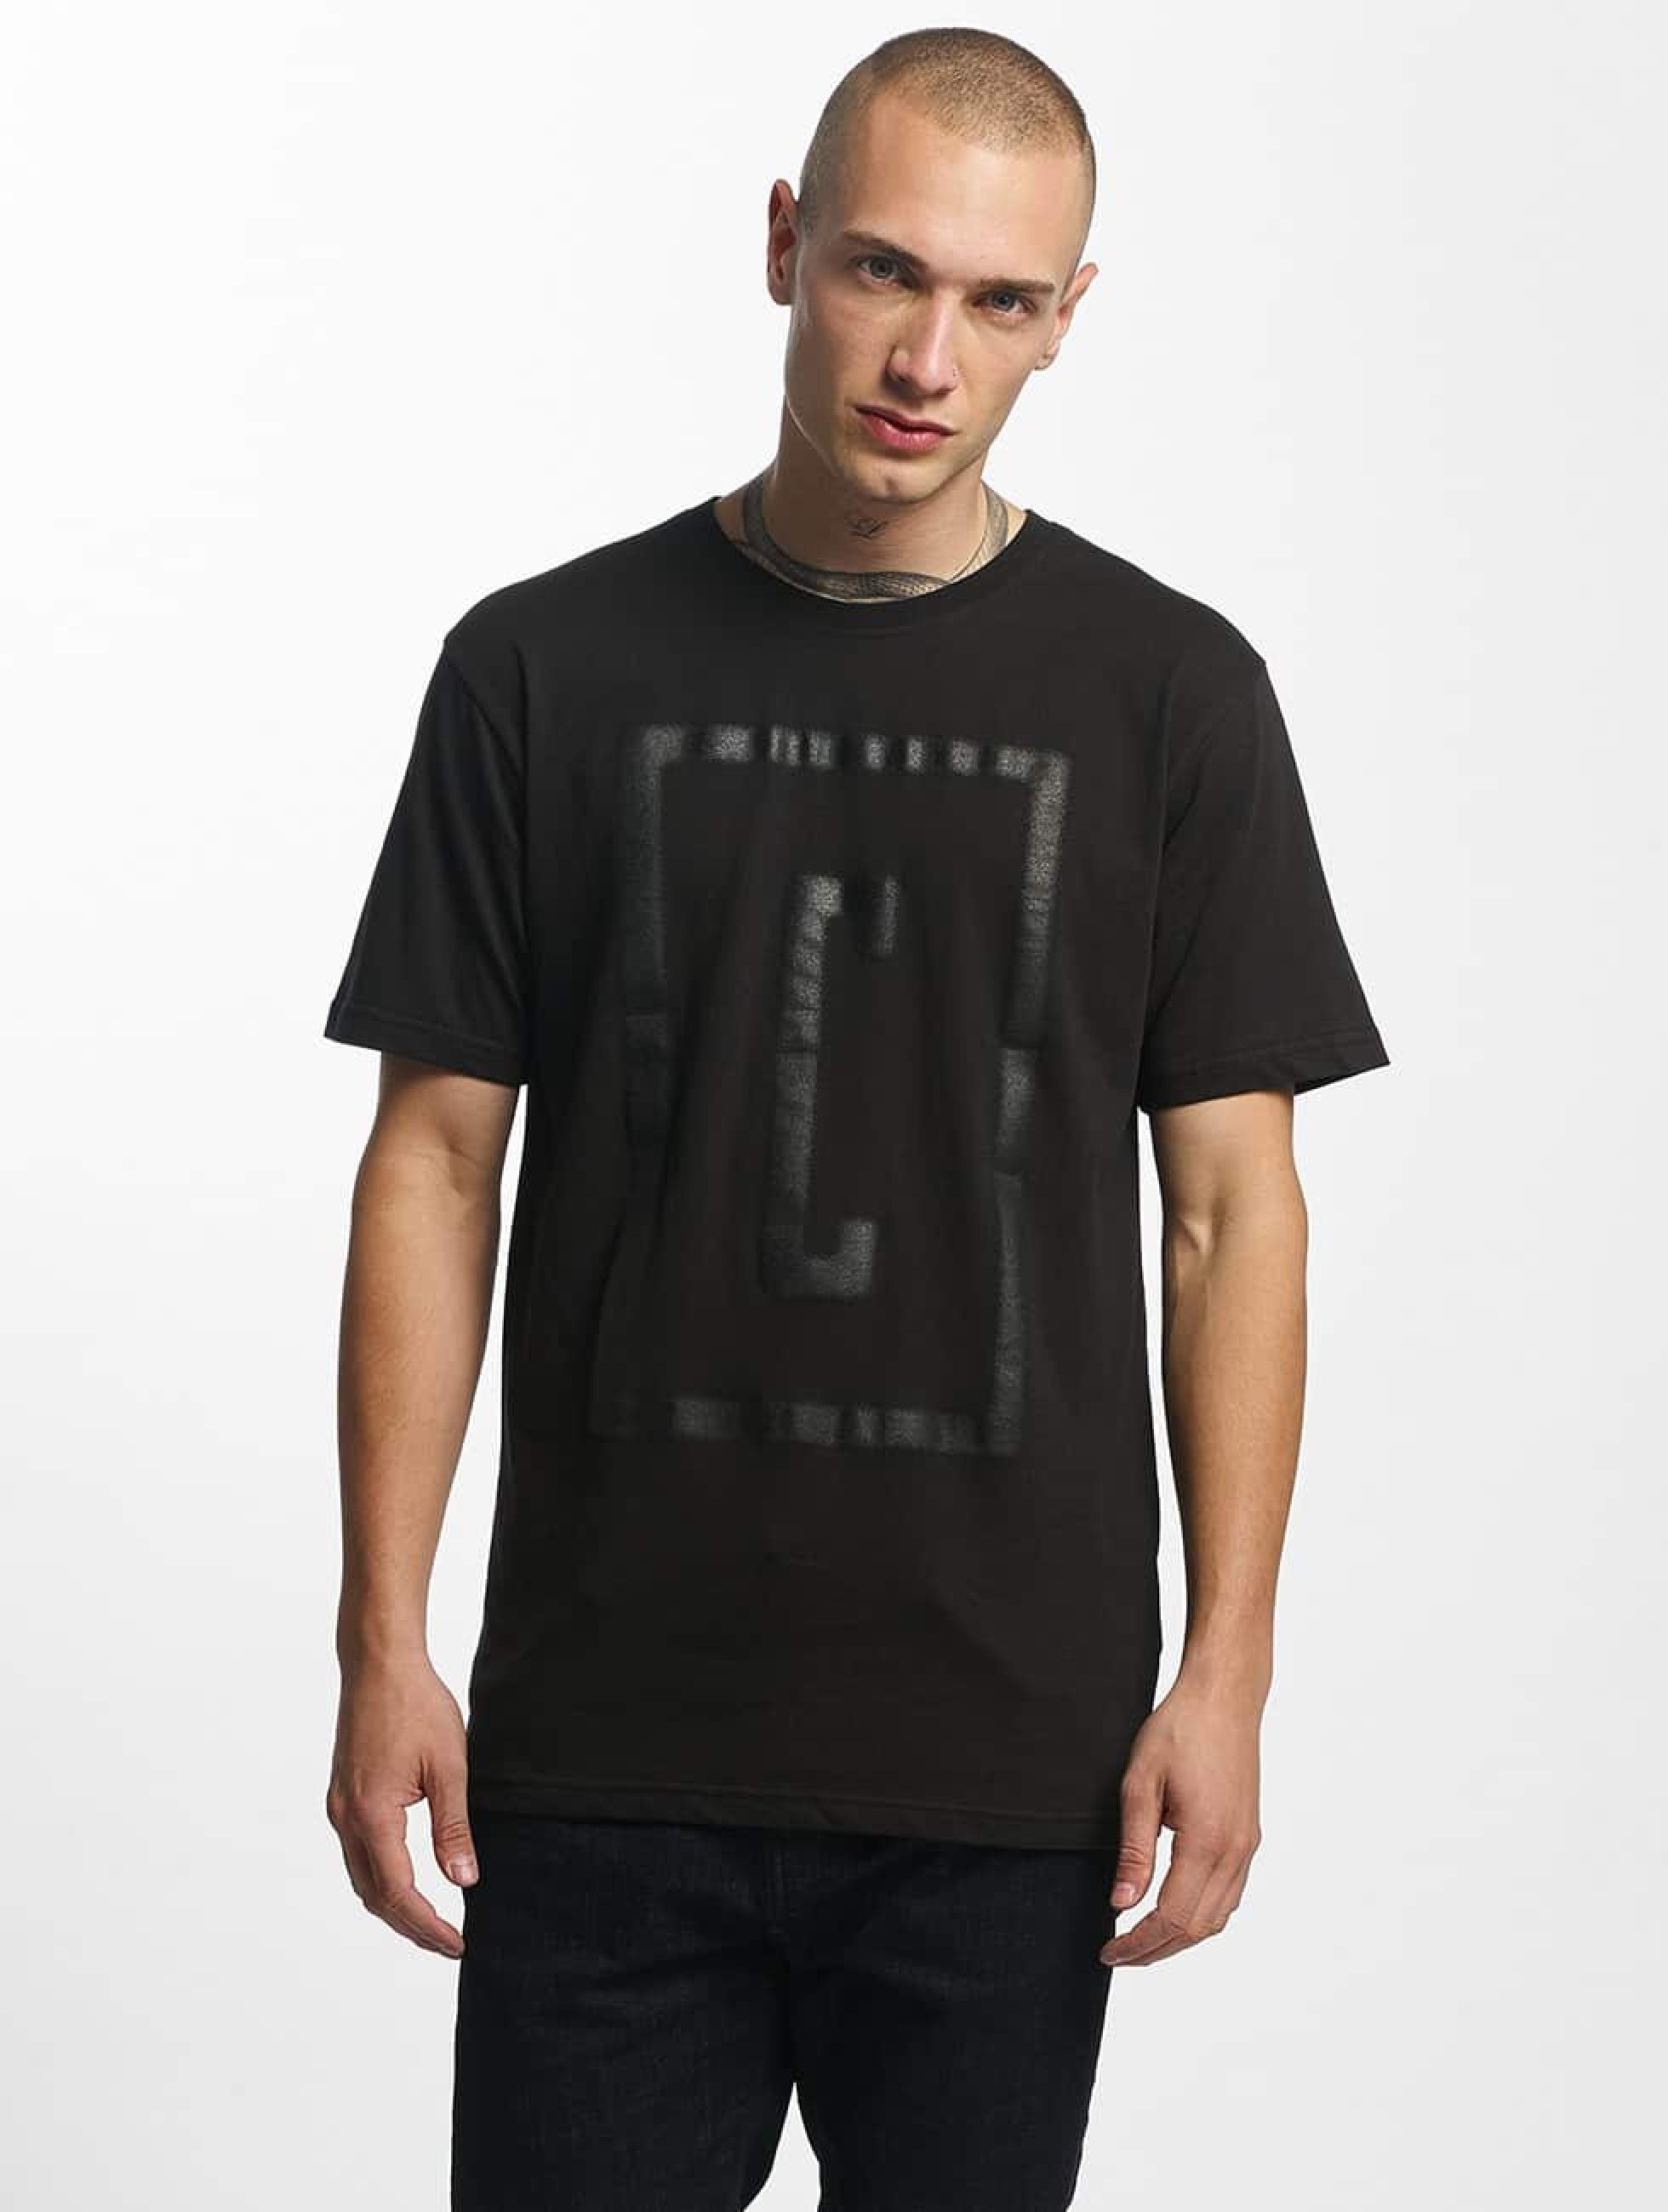 Cyprime / T-Shirt Lawrencium in black S